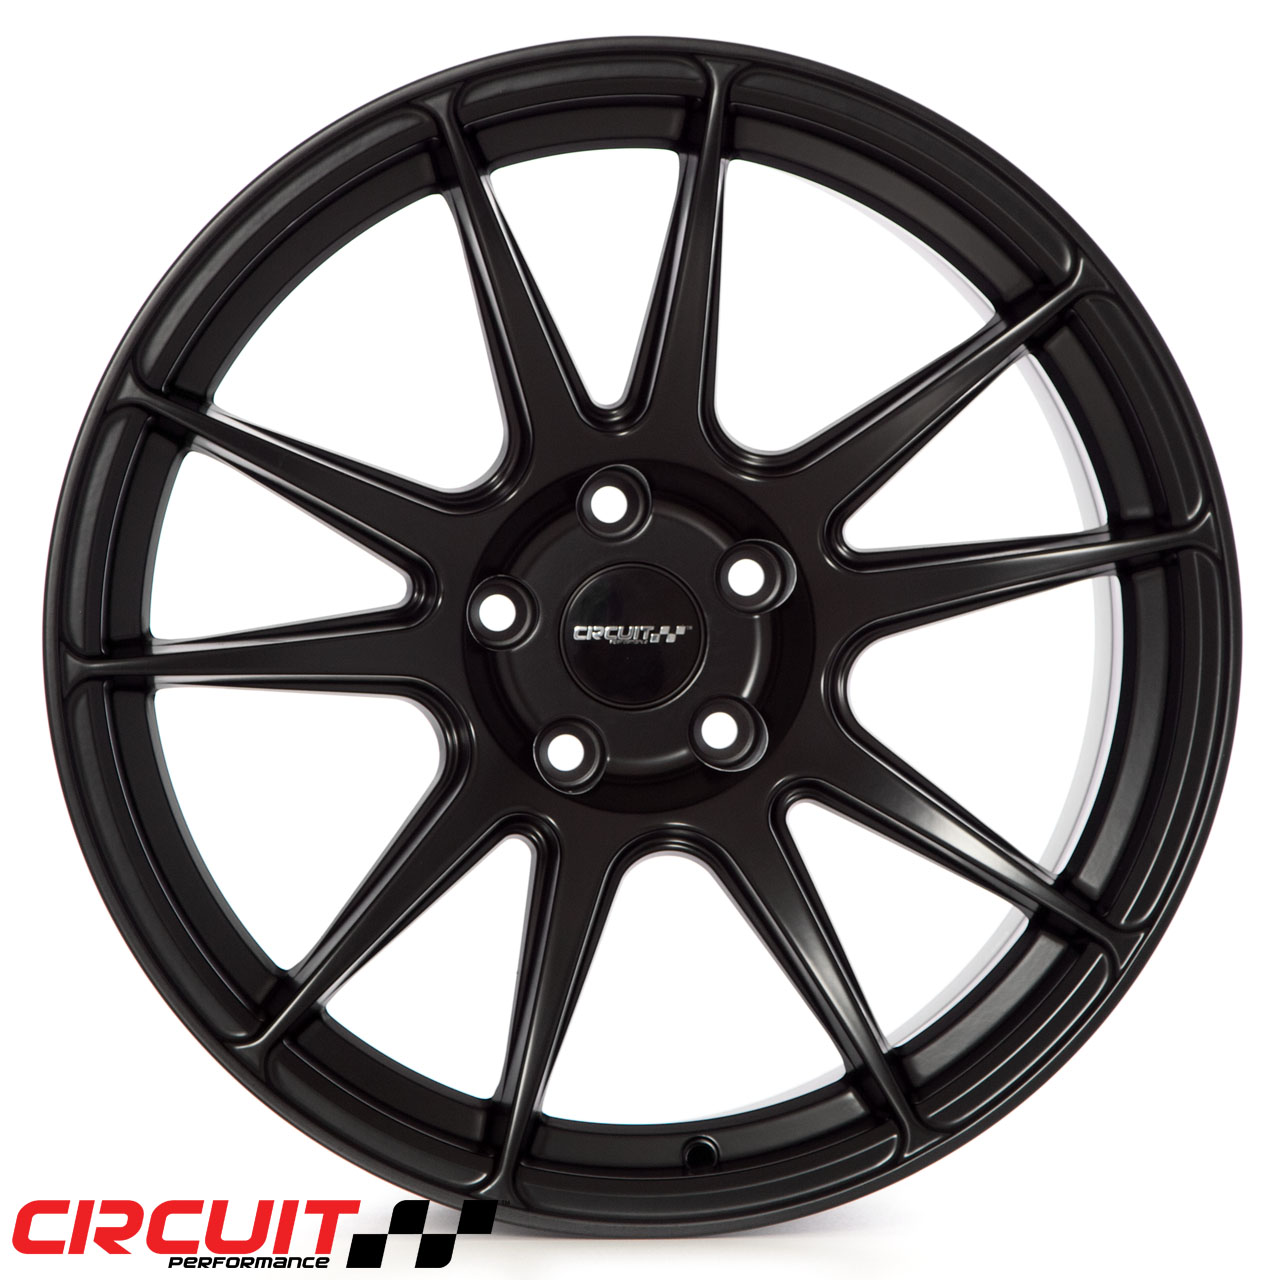 CP32 18x10.5 Flat Black 5x114.3 et22 Wheel - Circuit ...